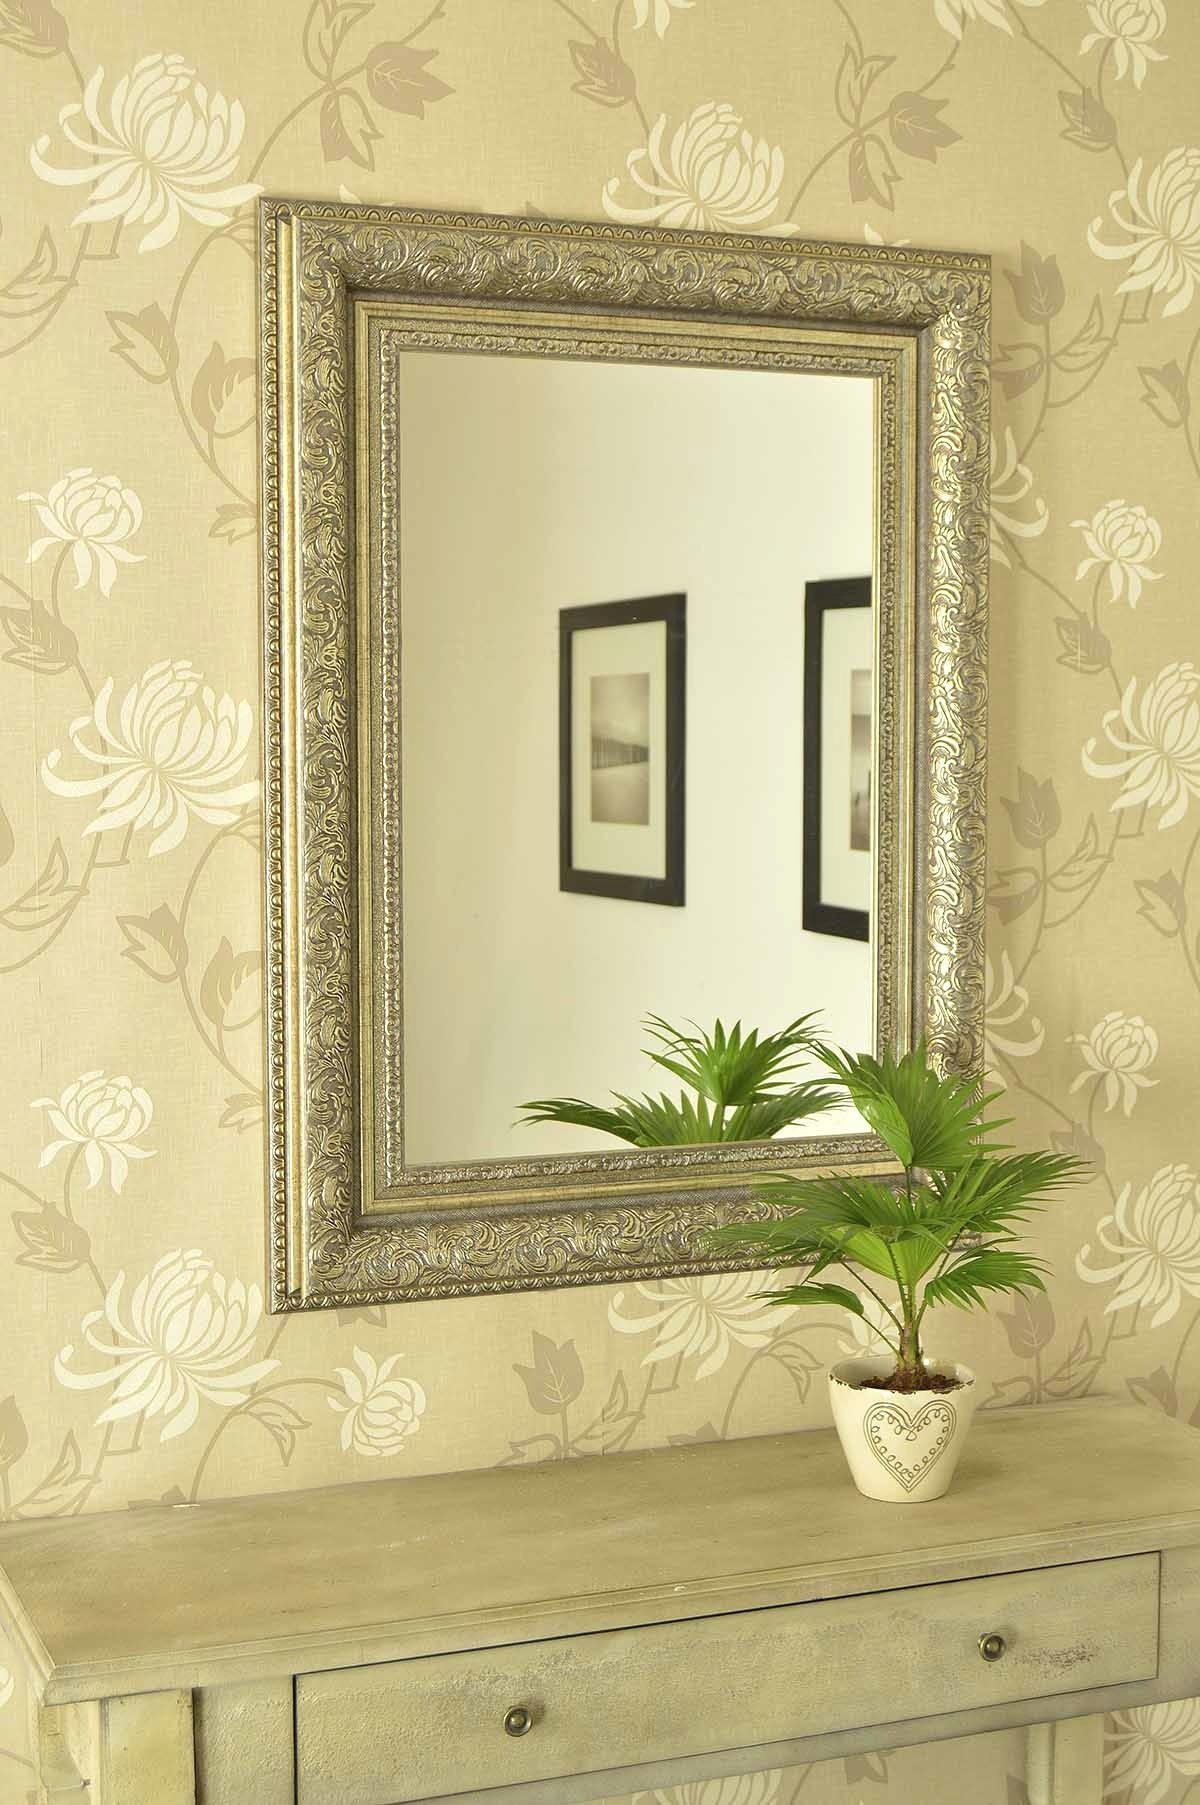 Wall Ideas : Contemporary Wall Mirrors Modern Wall Mirrors Sale Regarding Mirrors Modern Wall Art (View 16 of 20)